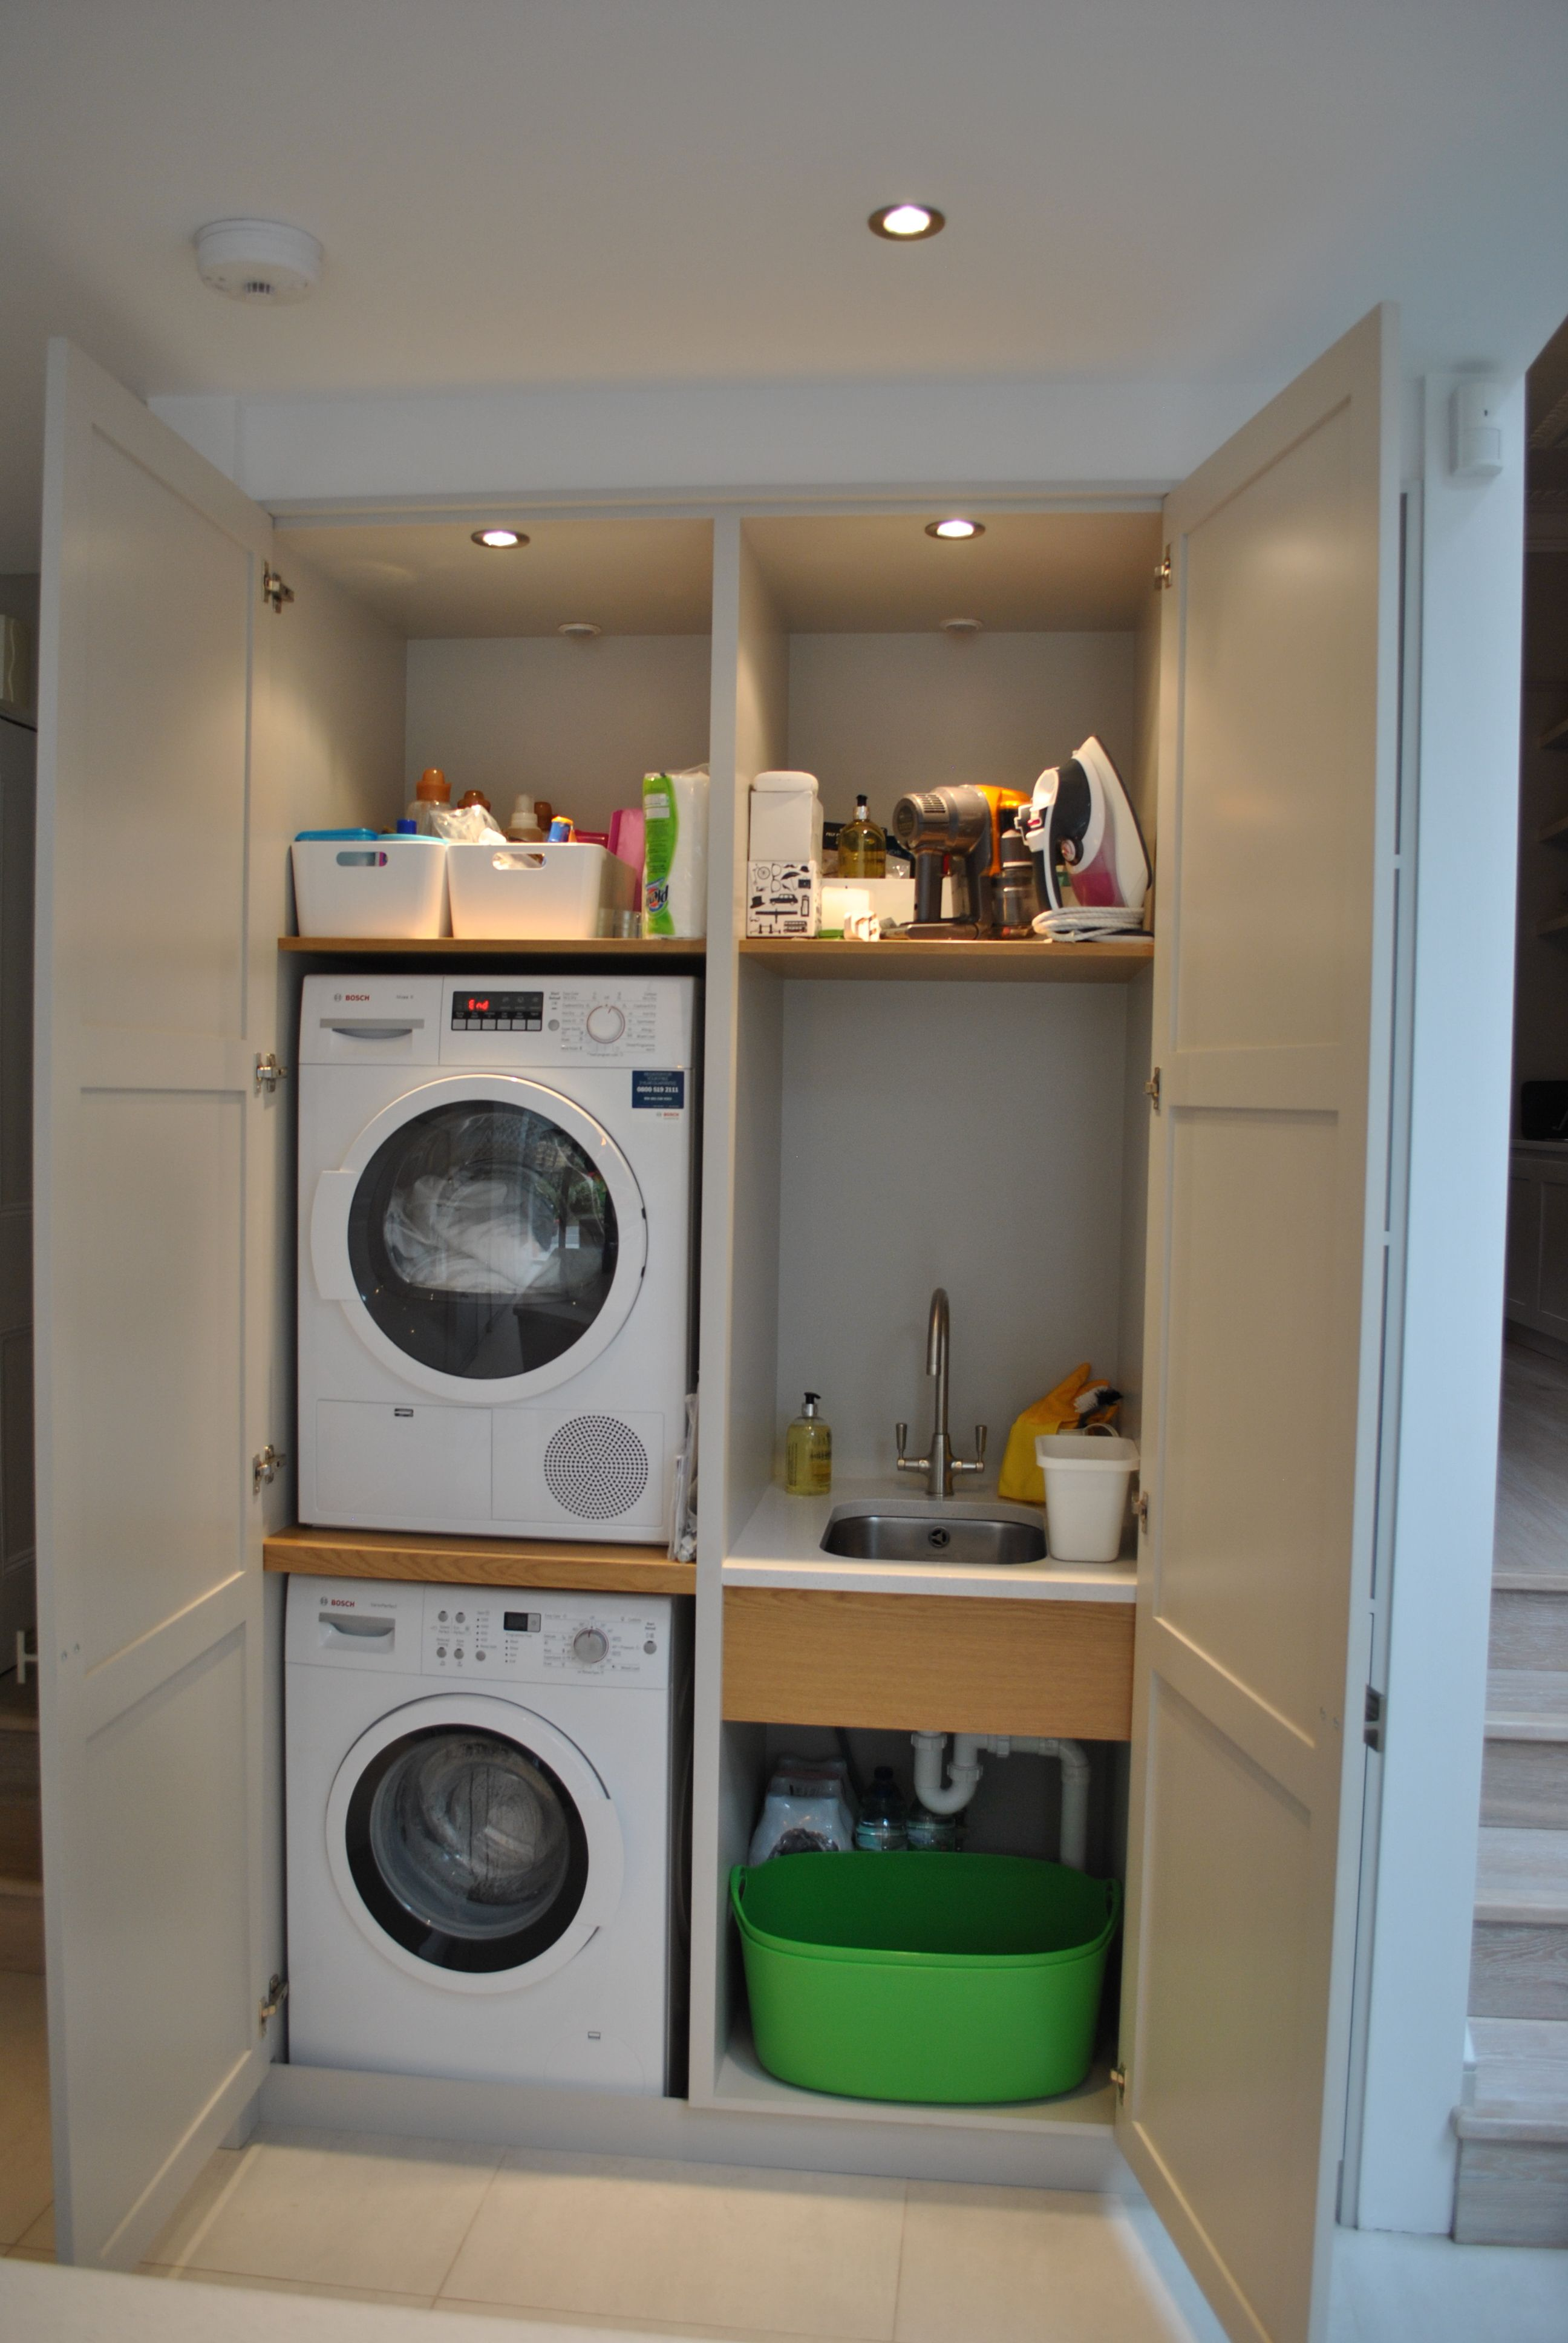 Storage Space Utility Room Storage Laundry Room Design